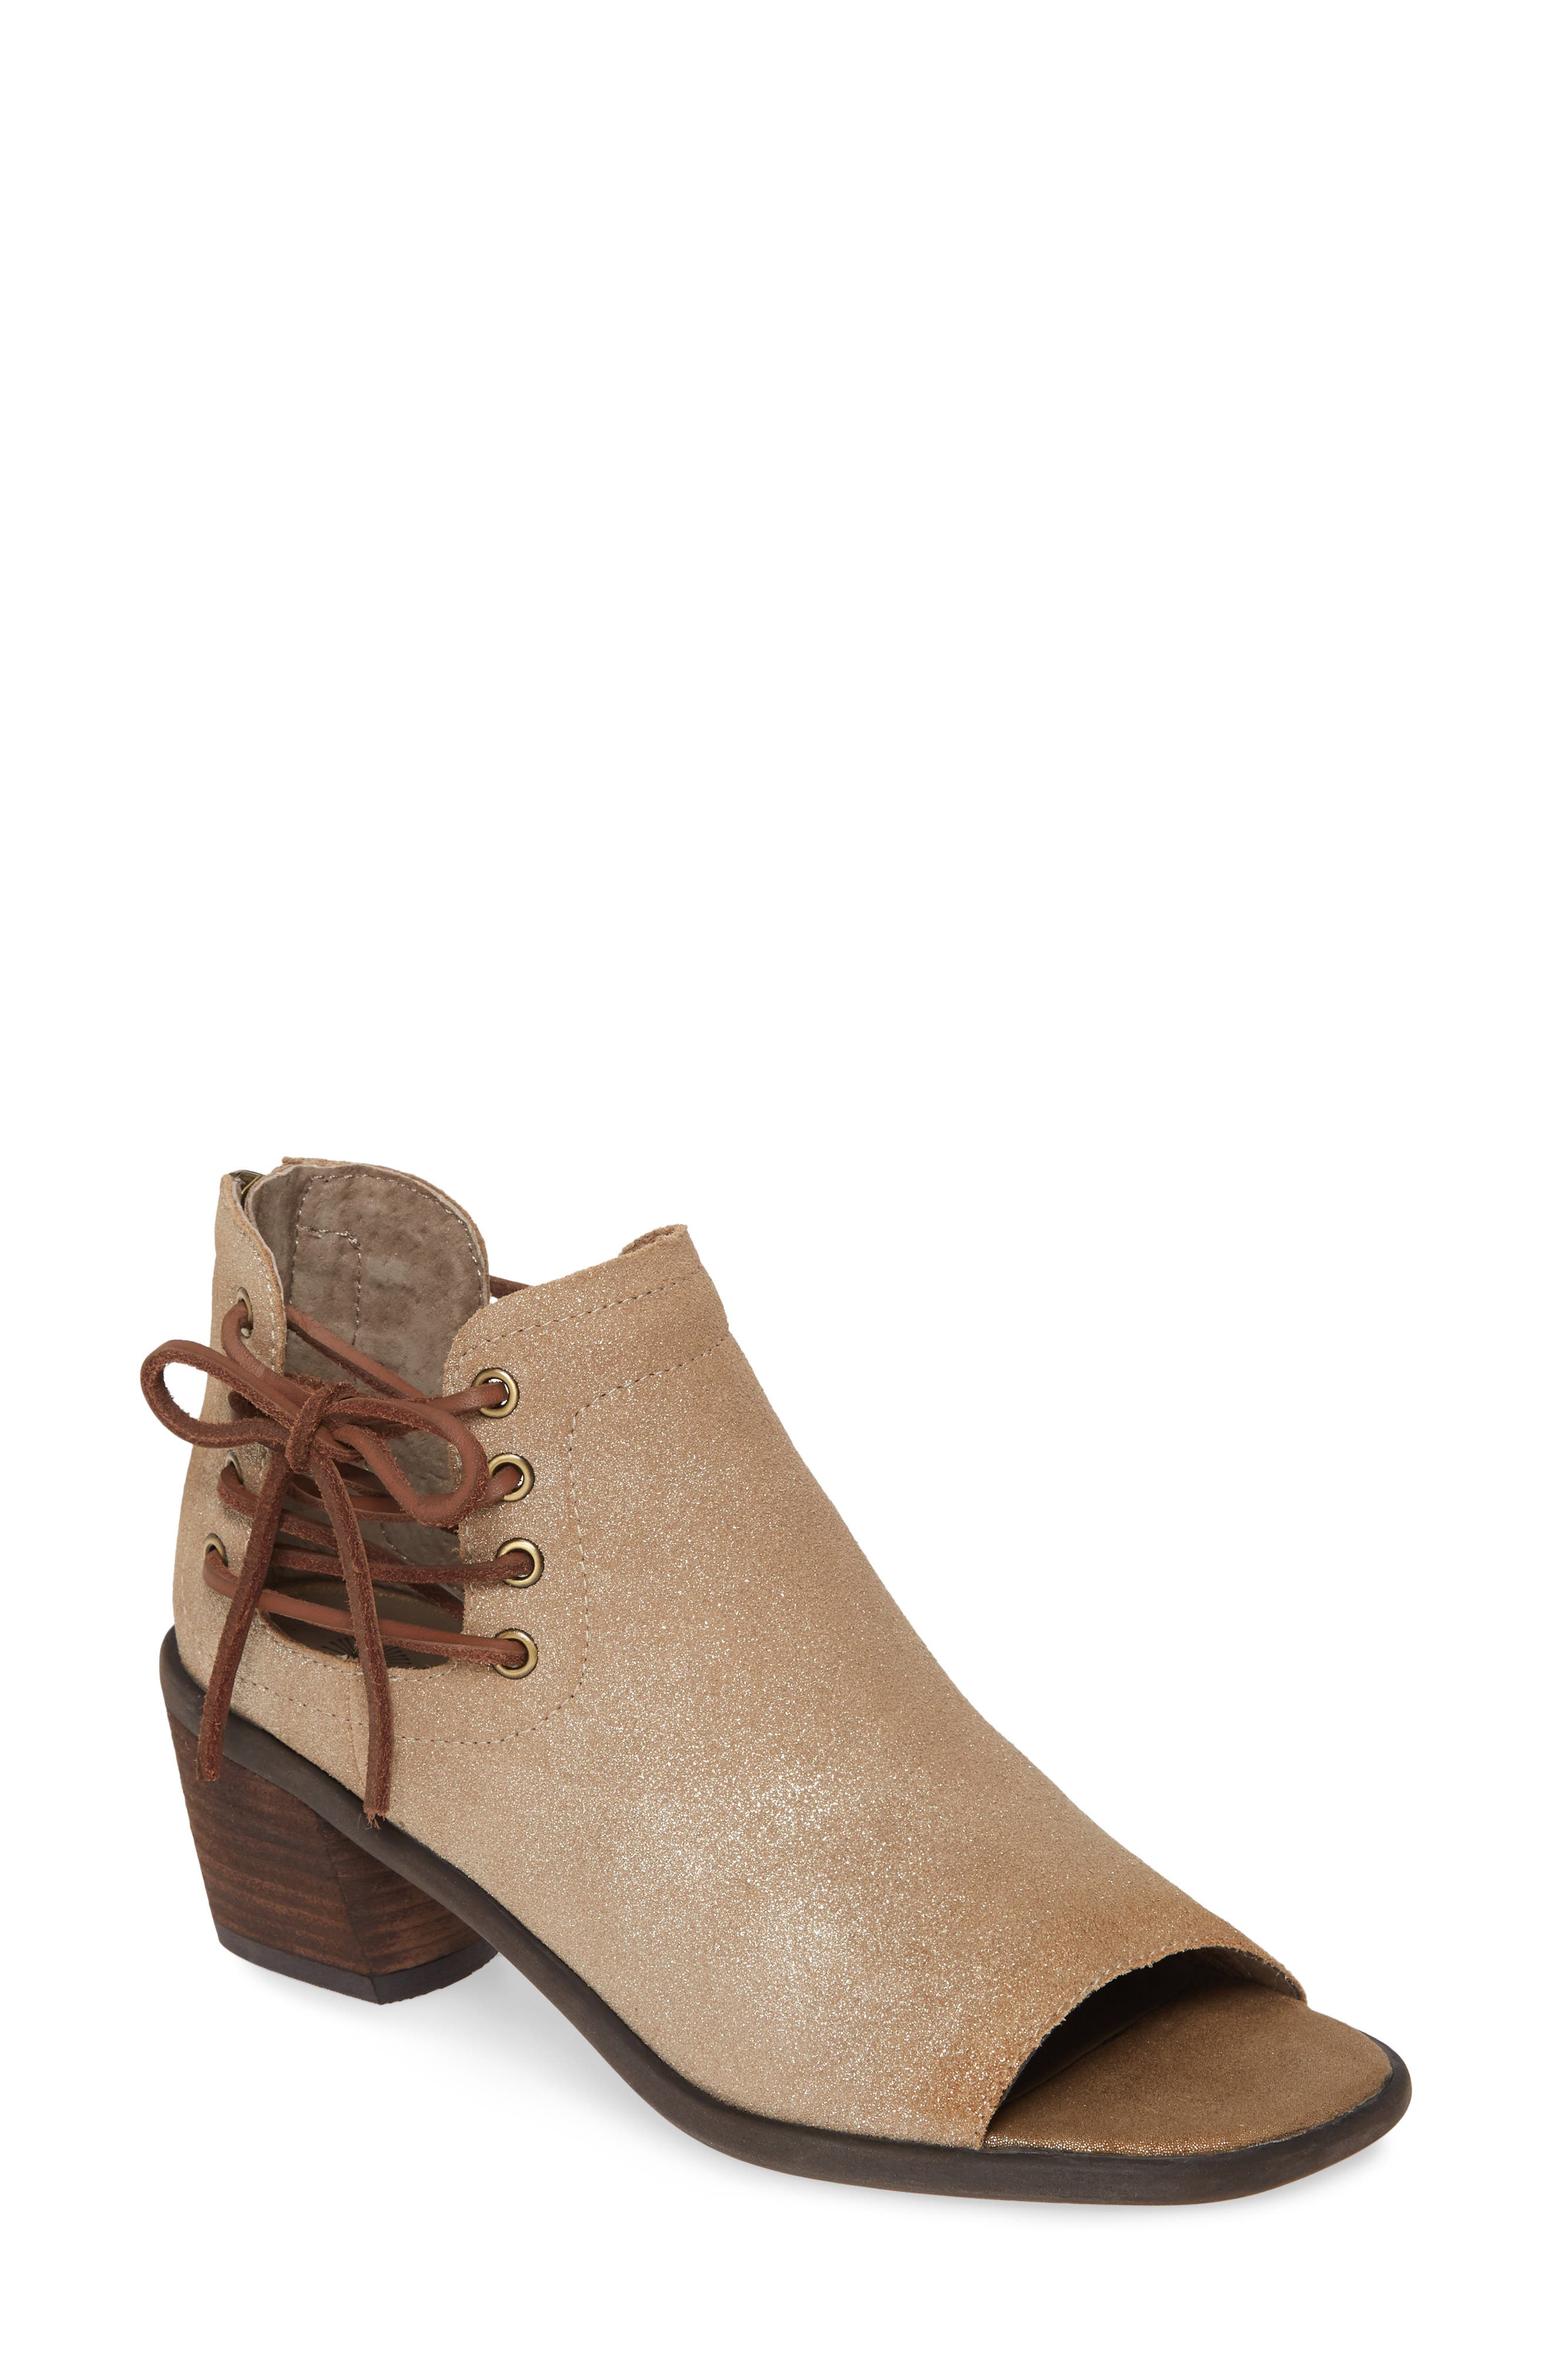 Raw leather laces are woven up the notched sides of this open-toe boot crafted from smooth leather and fit with a cushy, memory foam footbed. Style Name: Otbt Prairie Open Toe Boot (Women). Style Number: 5862201 1. Available in stores.